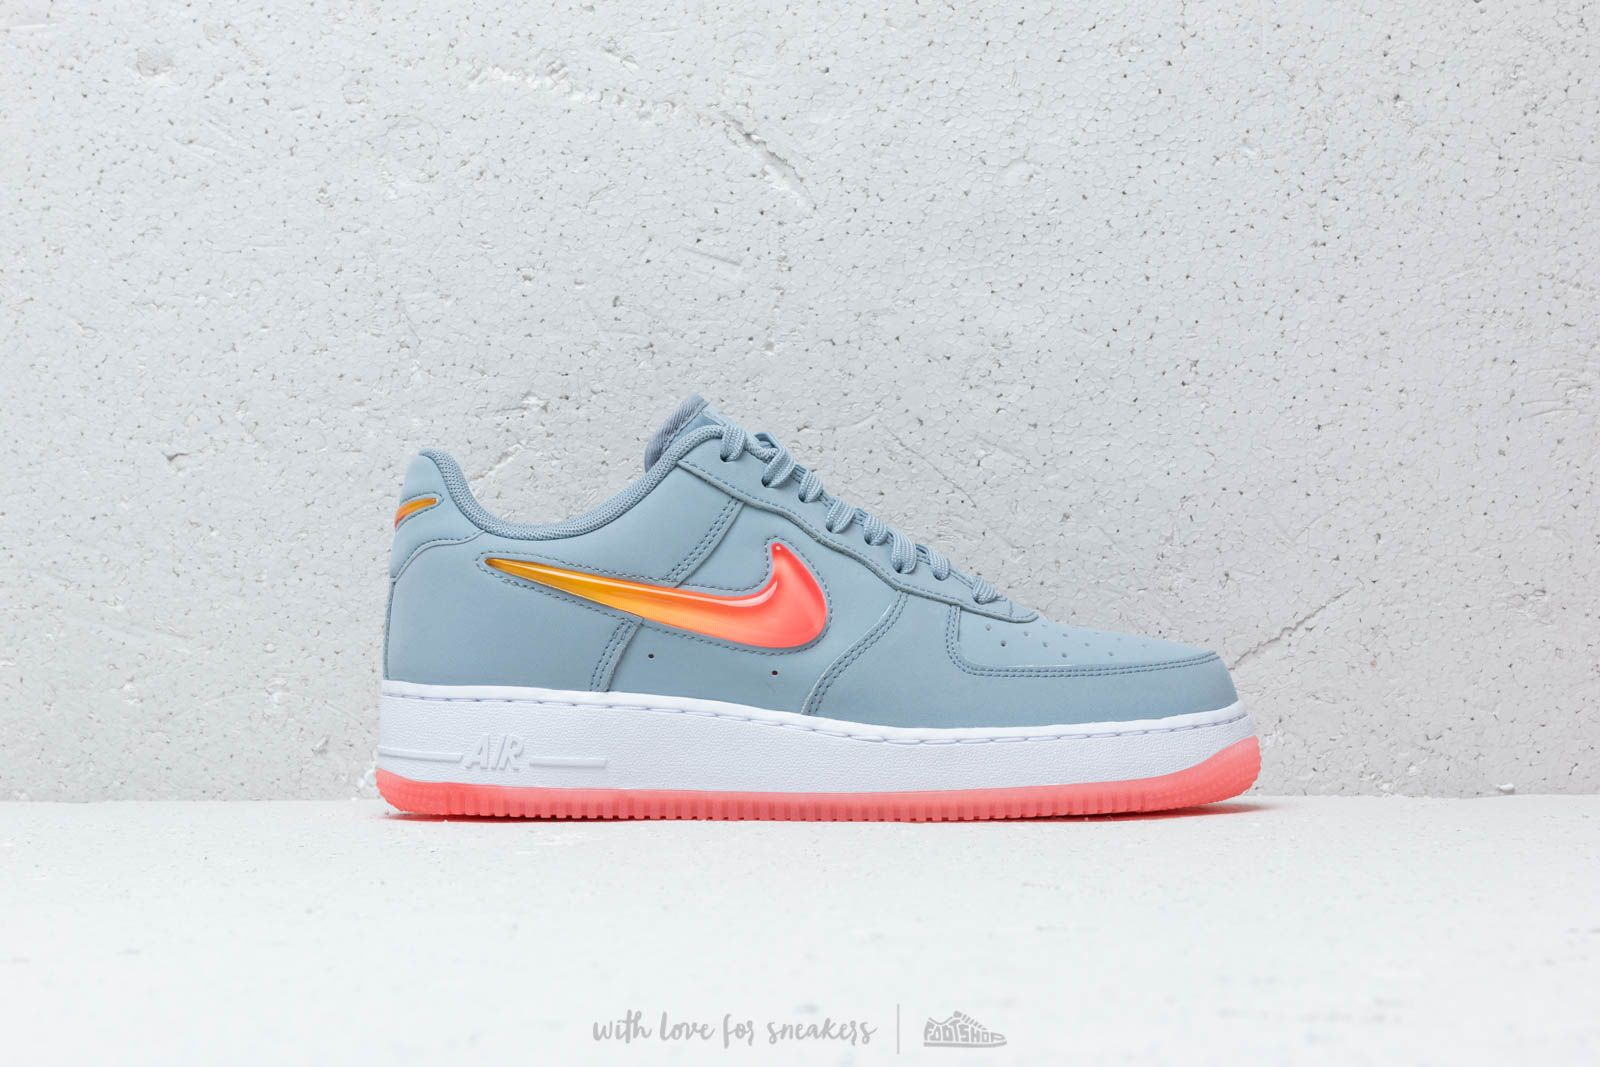 new product 41a79 ad1c6 Nike Air Force 1 07 Premium 2 Obsidian Mist Hot Punch-University Gold